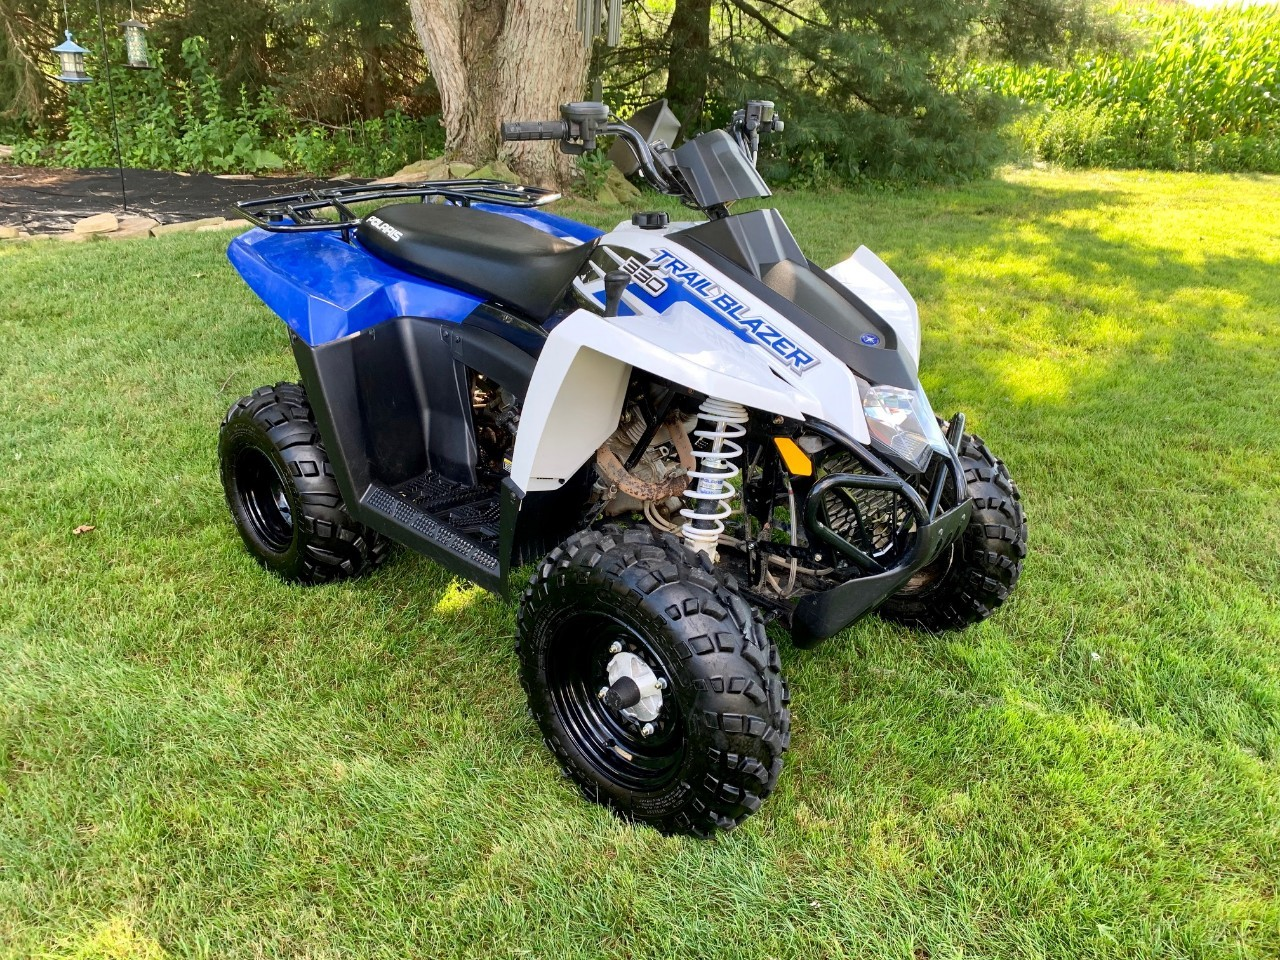 Pennsylvania - Used ATVs For Sale - ATV Trader